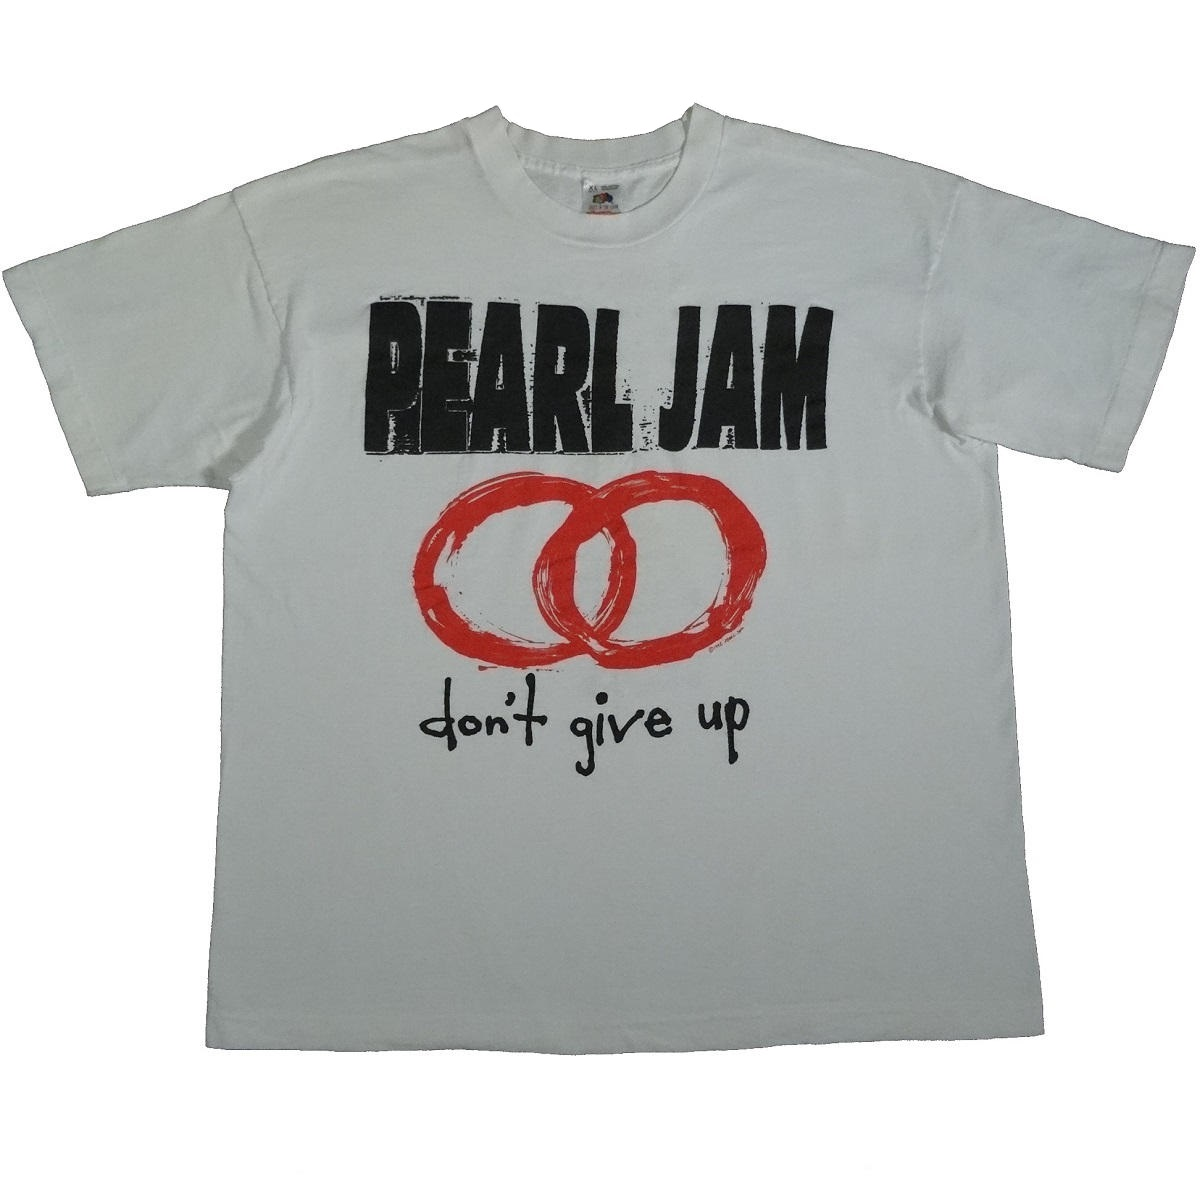 pearl jam dont give up vintage 1992 tour t shirt 90s front of shirt